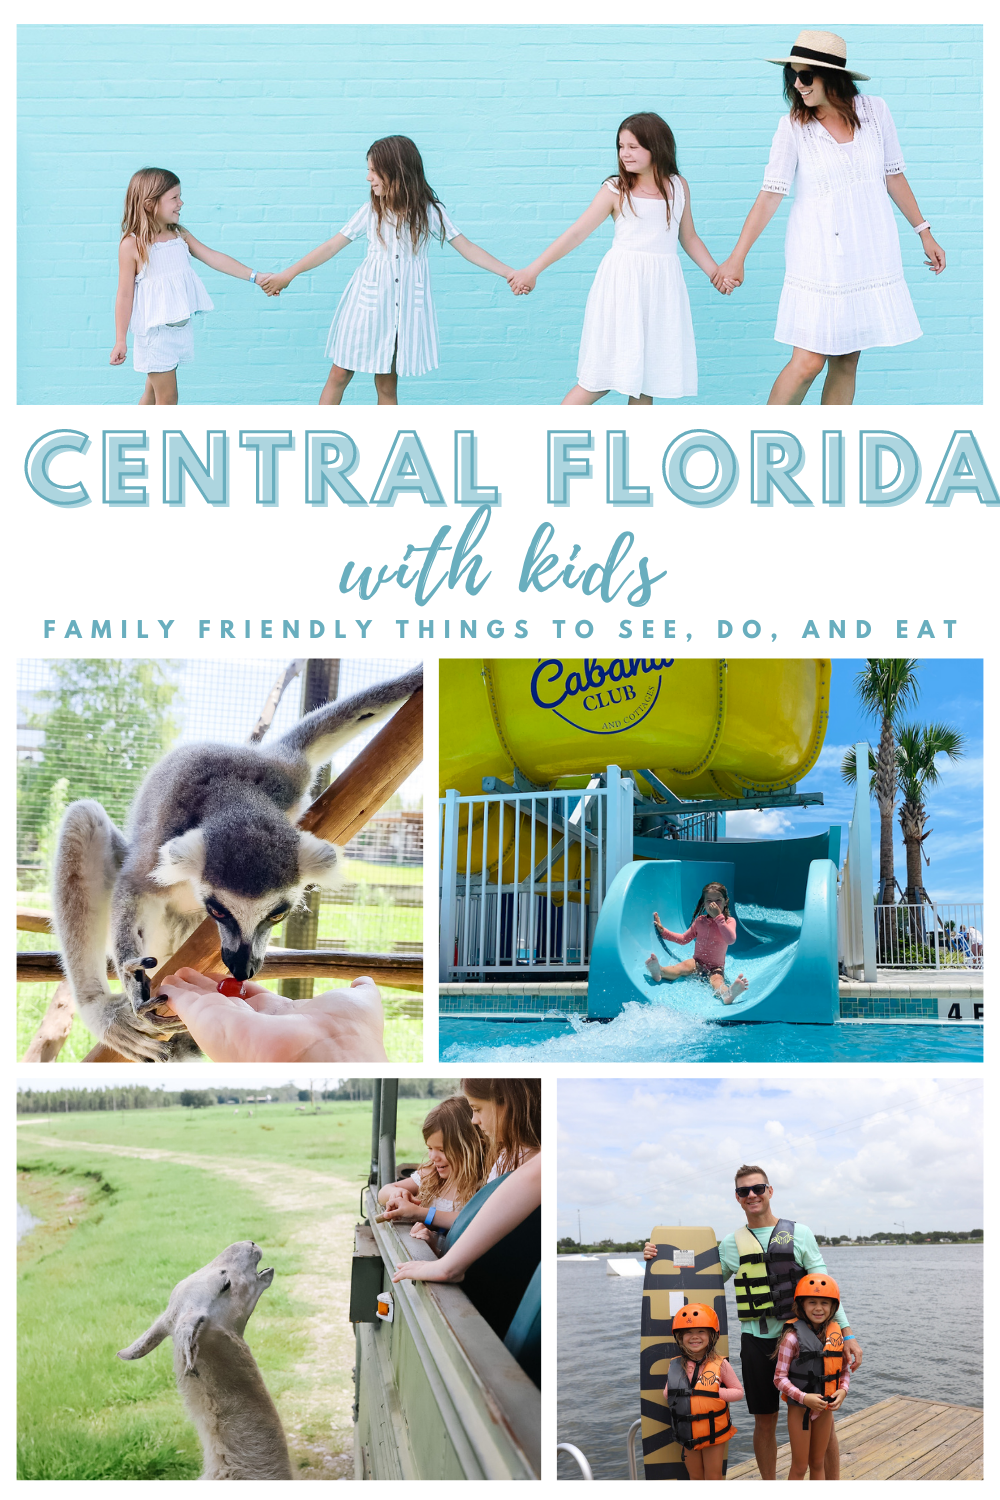 The best places to go with kids on Central Florida